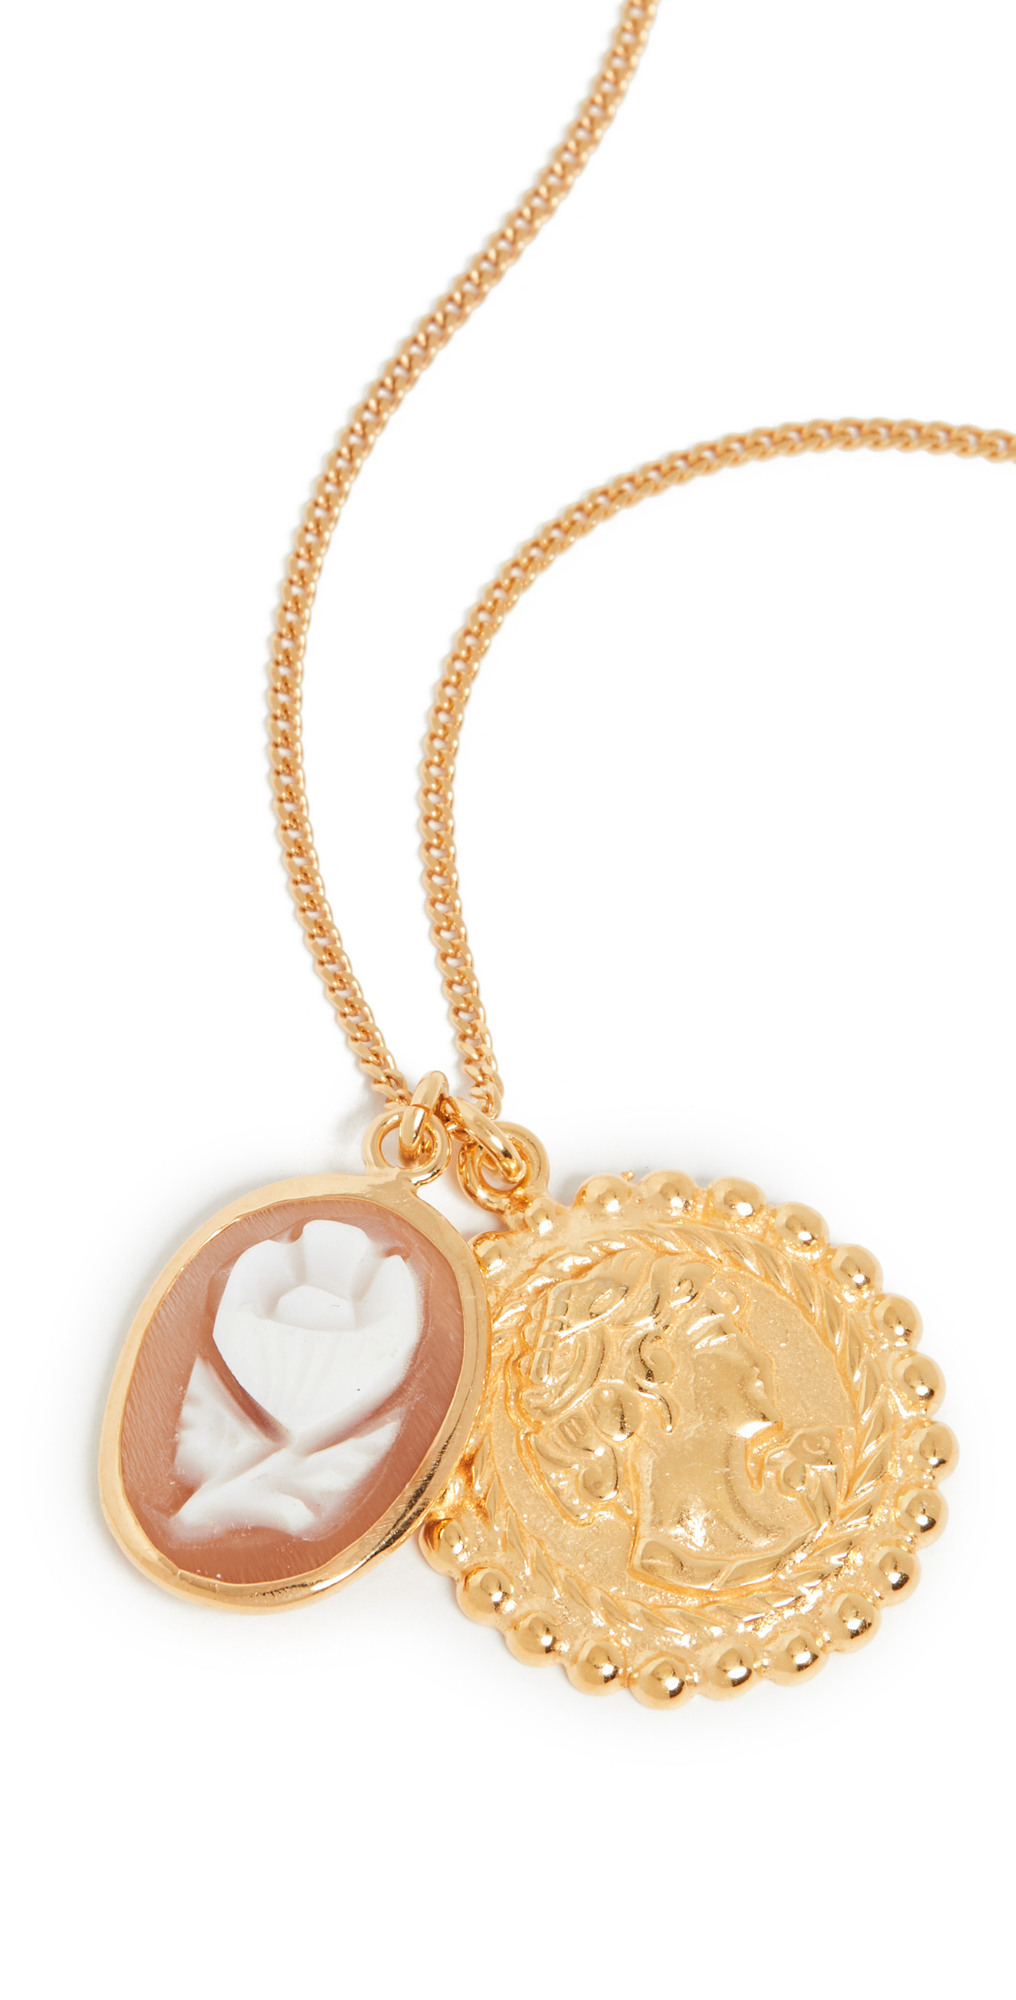 Cameo and Medallion Necklace